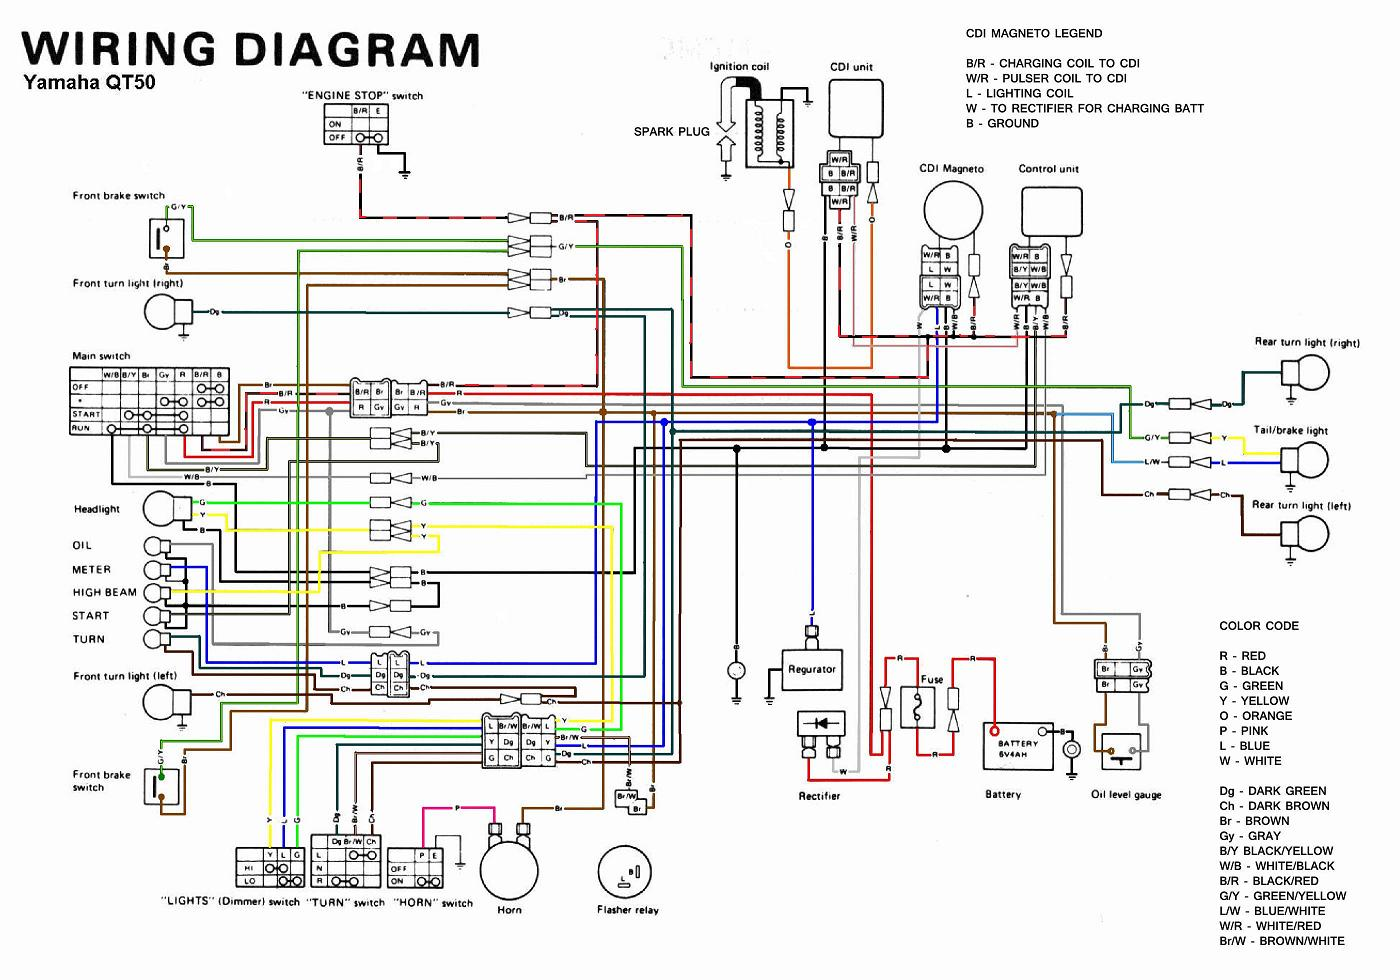 1979 yamaha xs1100 wiring diy enthusiasts wiring diagrams u2022 rh broadwaycomputers us 78 yamaha xs1100 wiring diagram